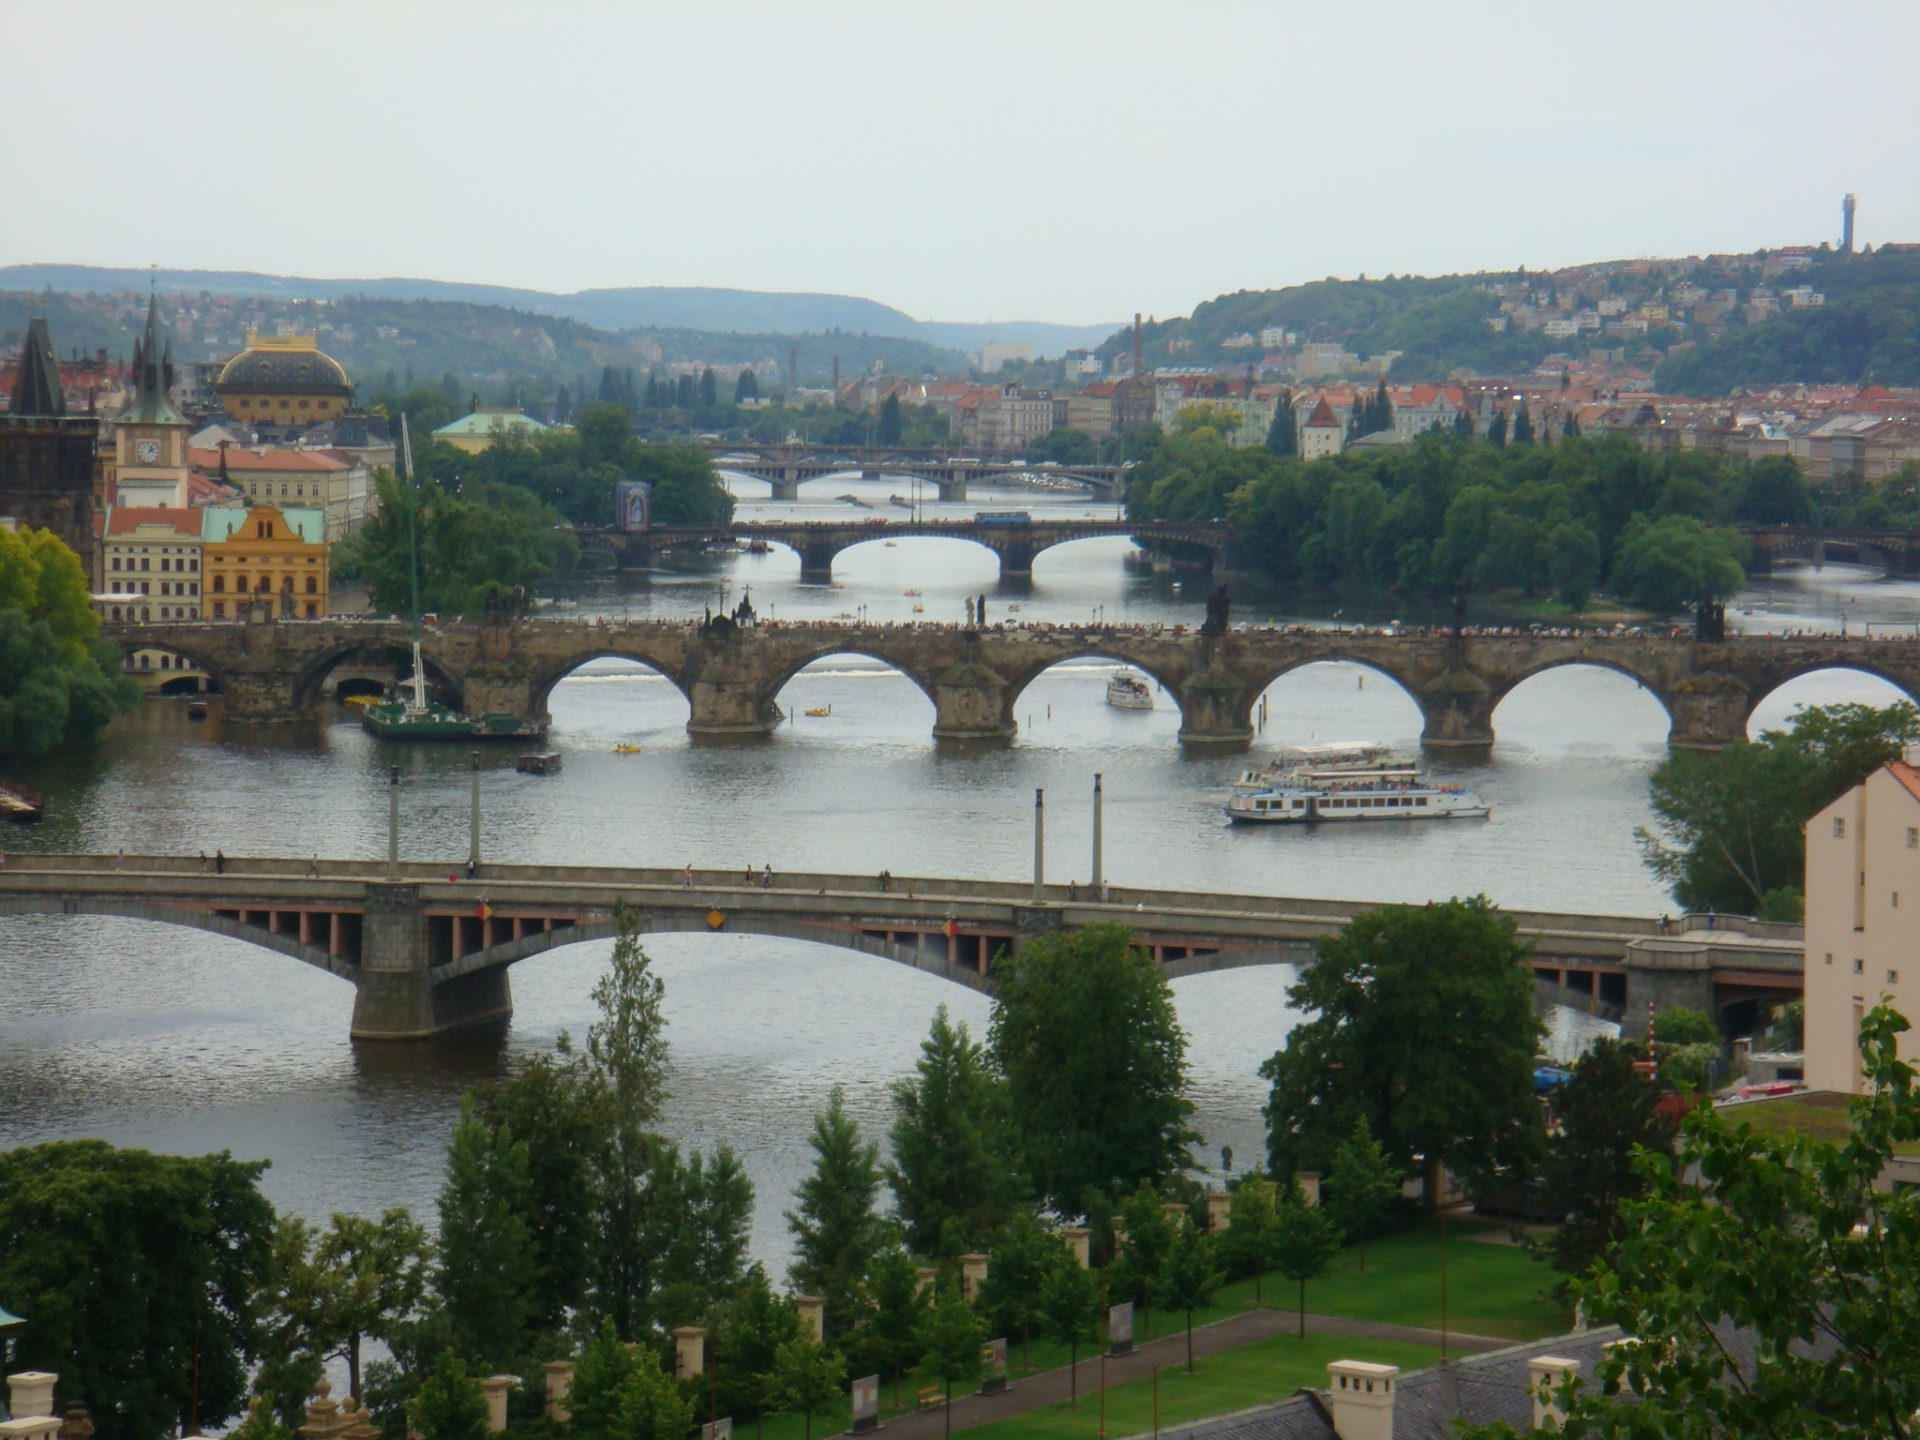 The famous Charles Bridge is in the middle - dating from 1400